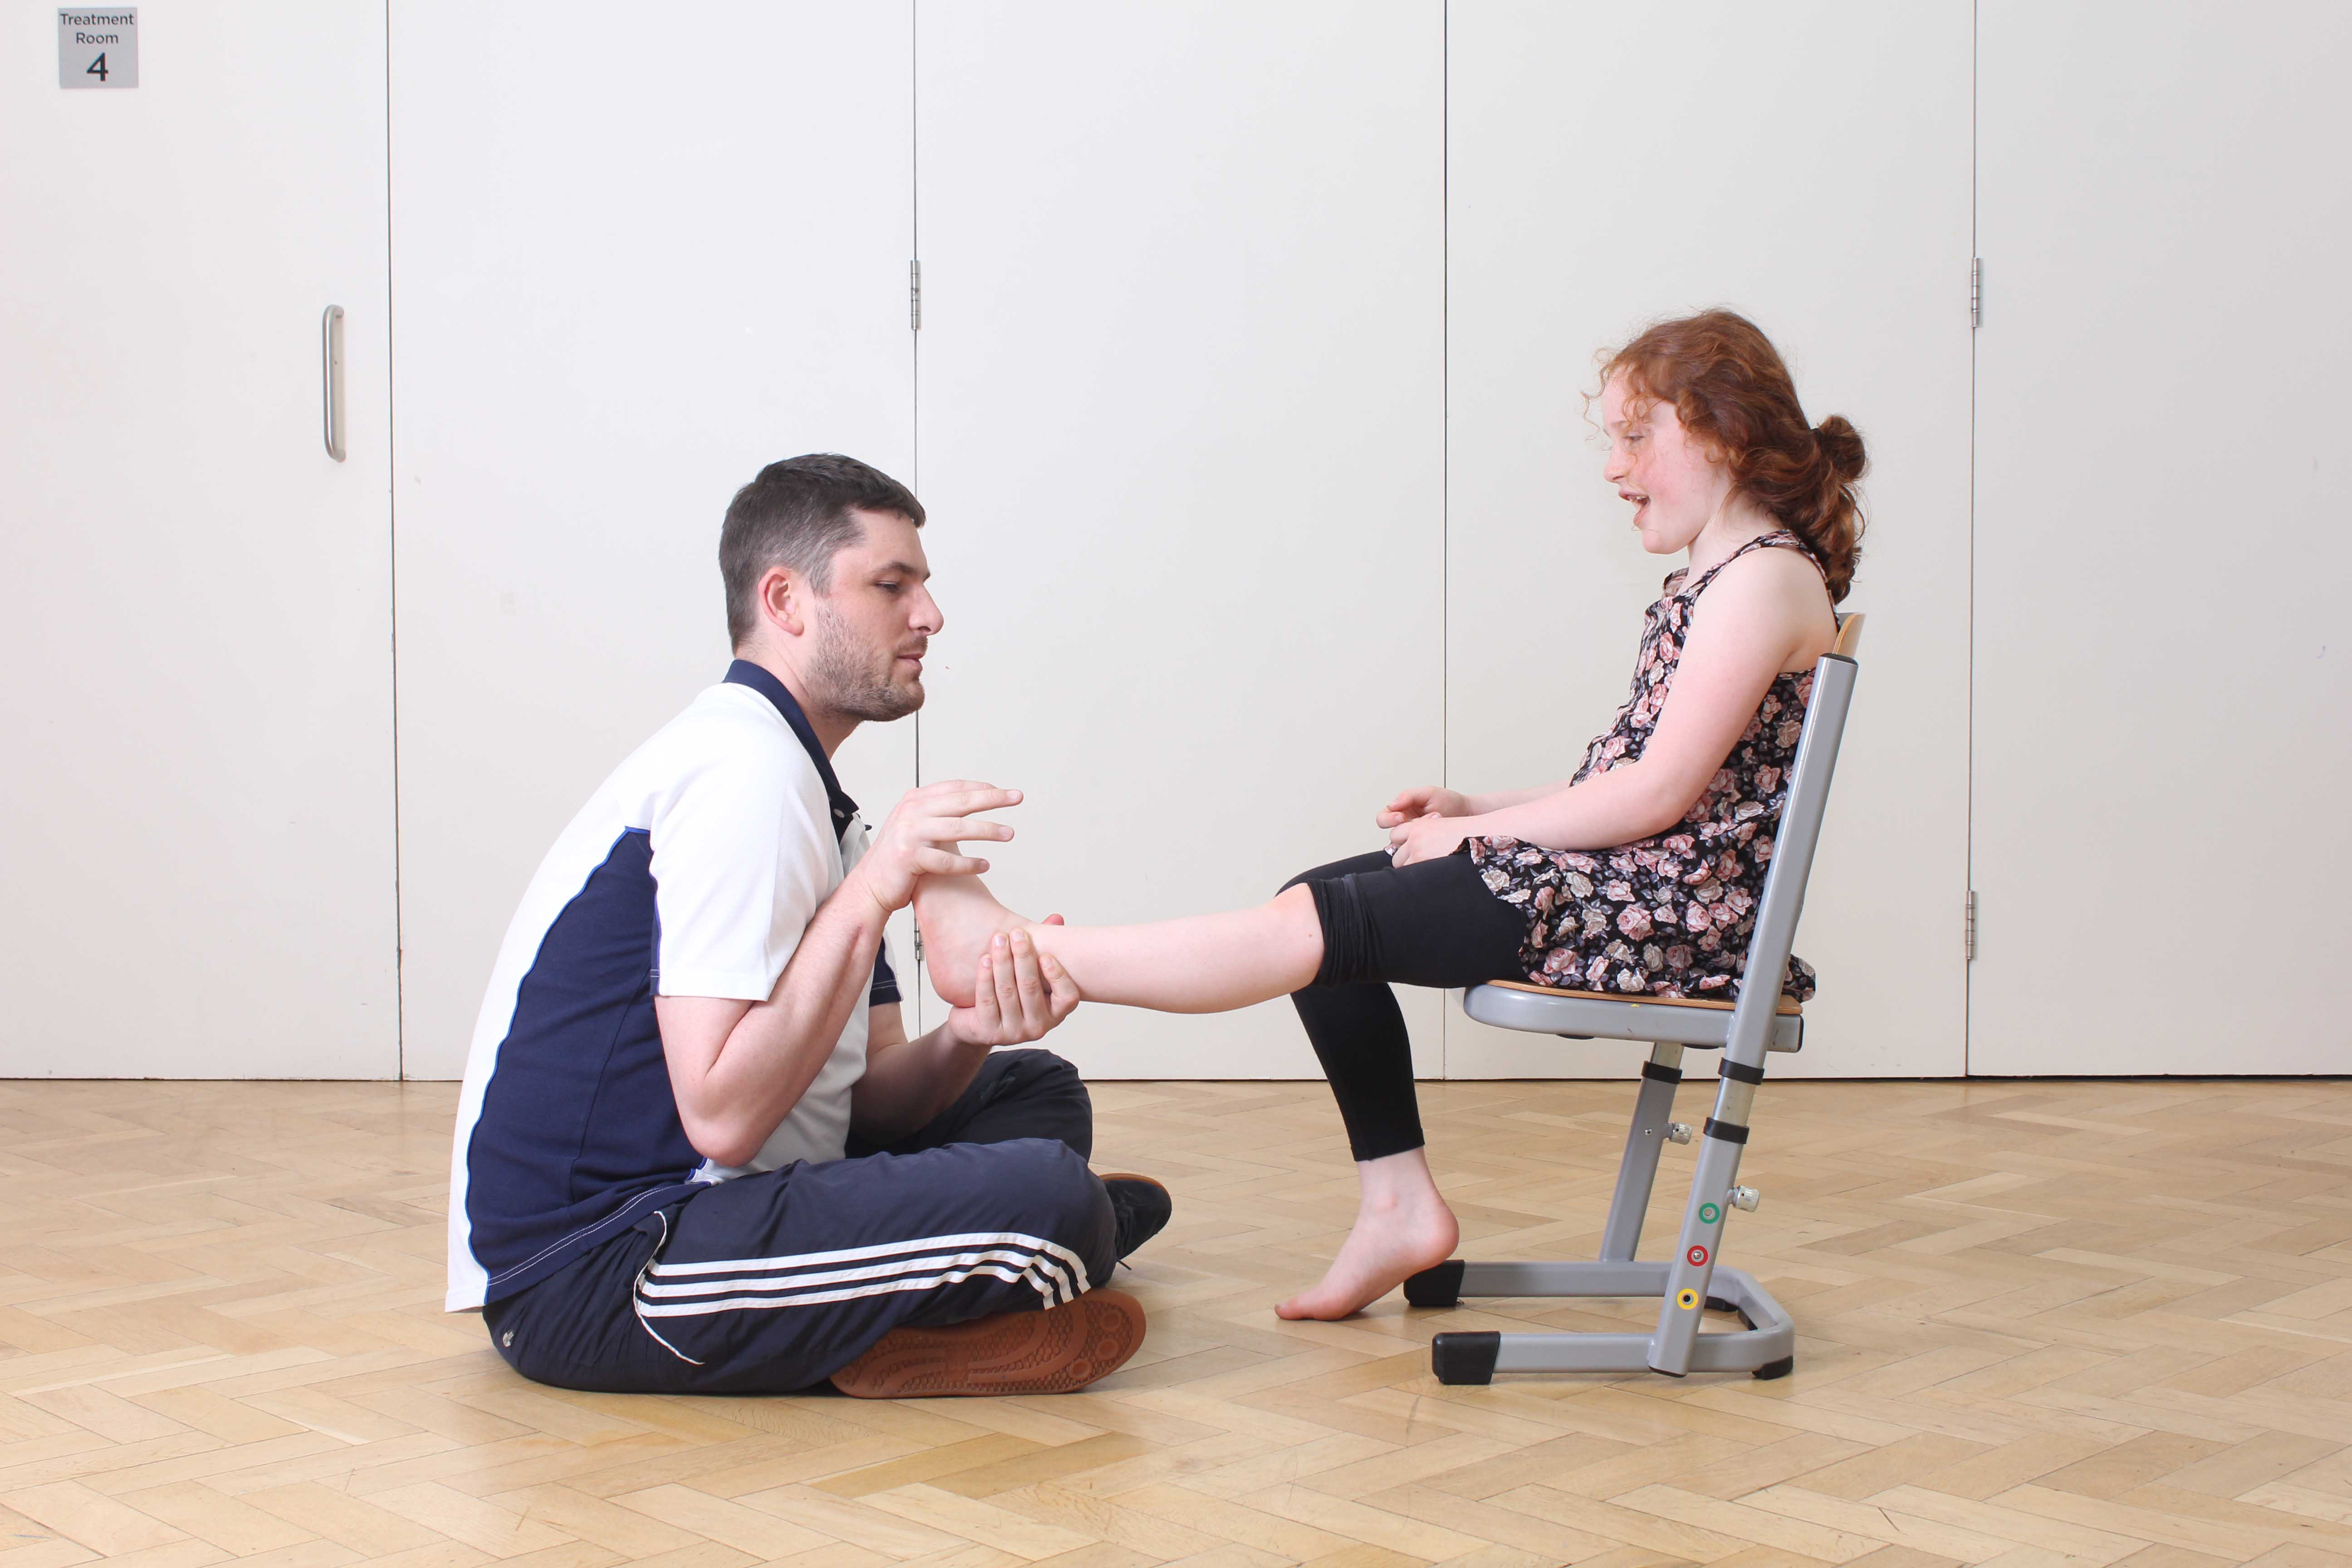 Following a long period of time in a cast after a fracture, your child may require passive stretching techniques to engable them to get their range of motion back.